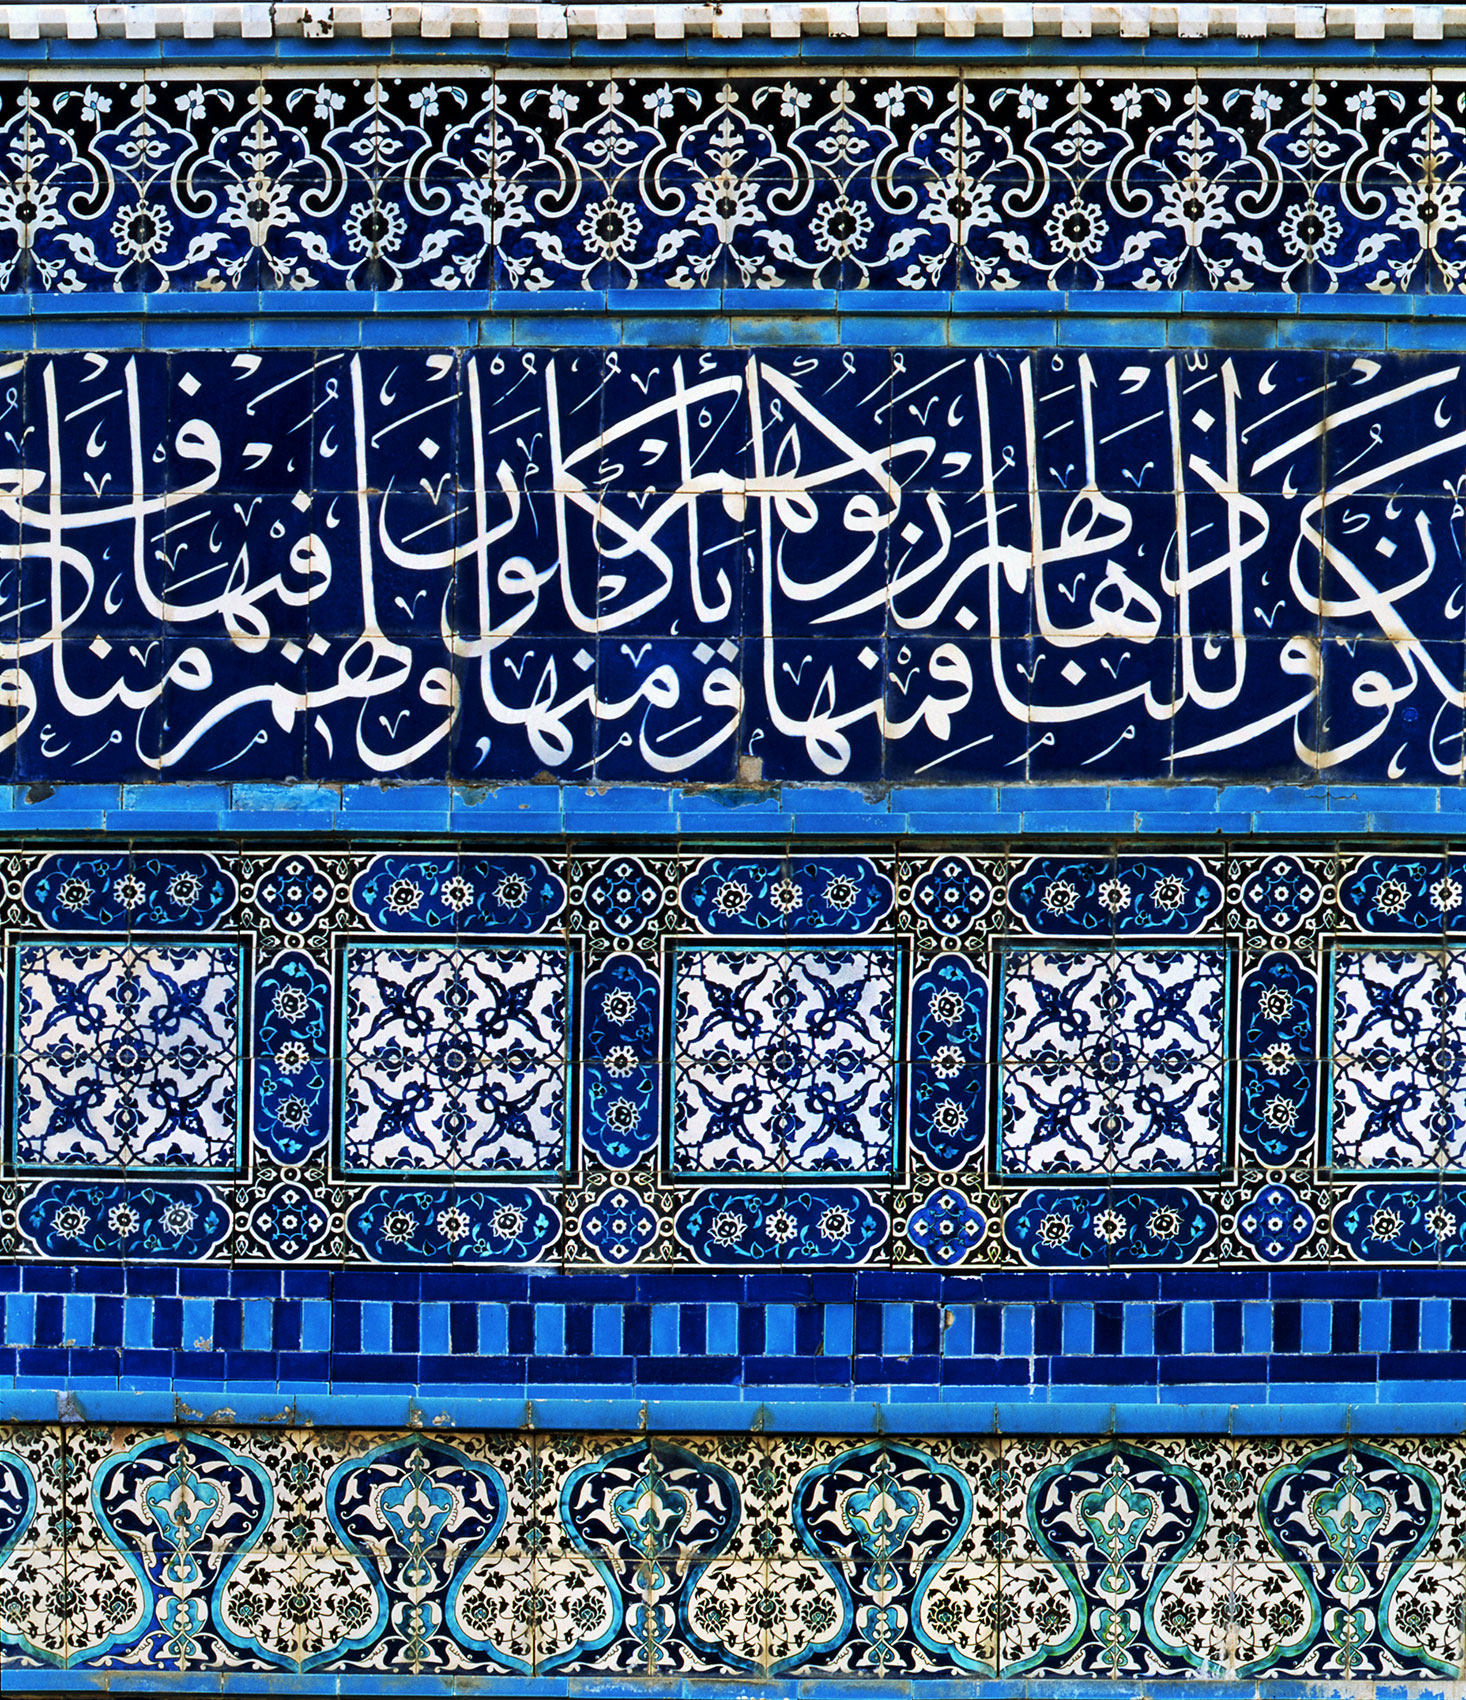 Parapet bands with inscription from <i>Surat al-Yassin</i>.  <i>Qubbat al-Sakhra</i> / Dome of the Rock